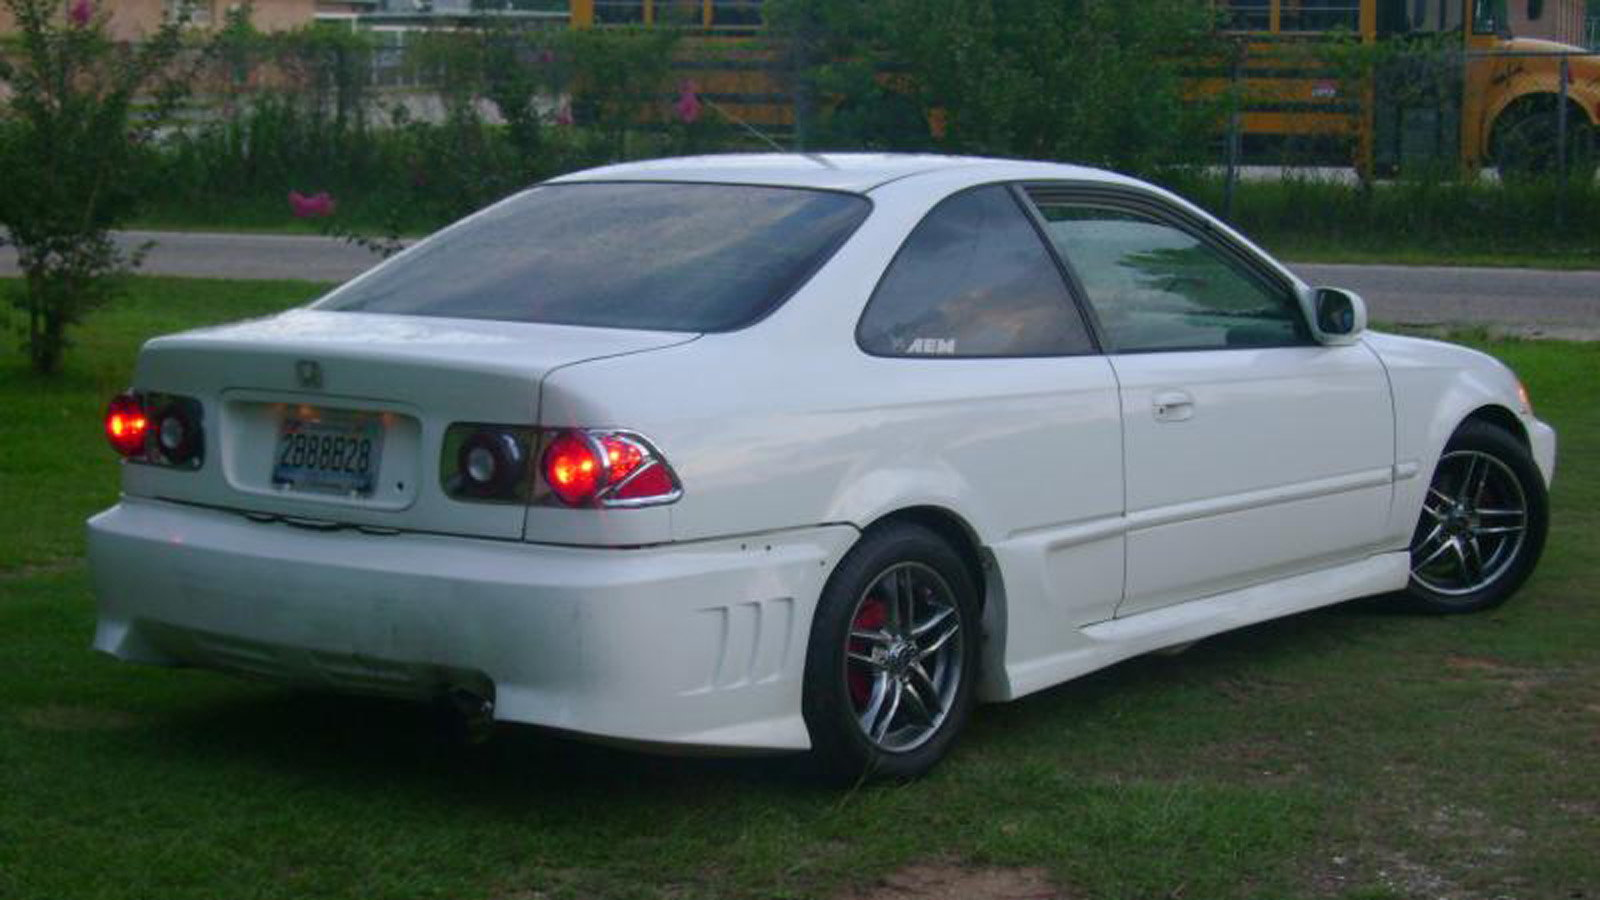 Honda Civic Body Kits Regret